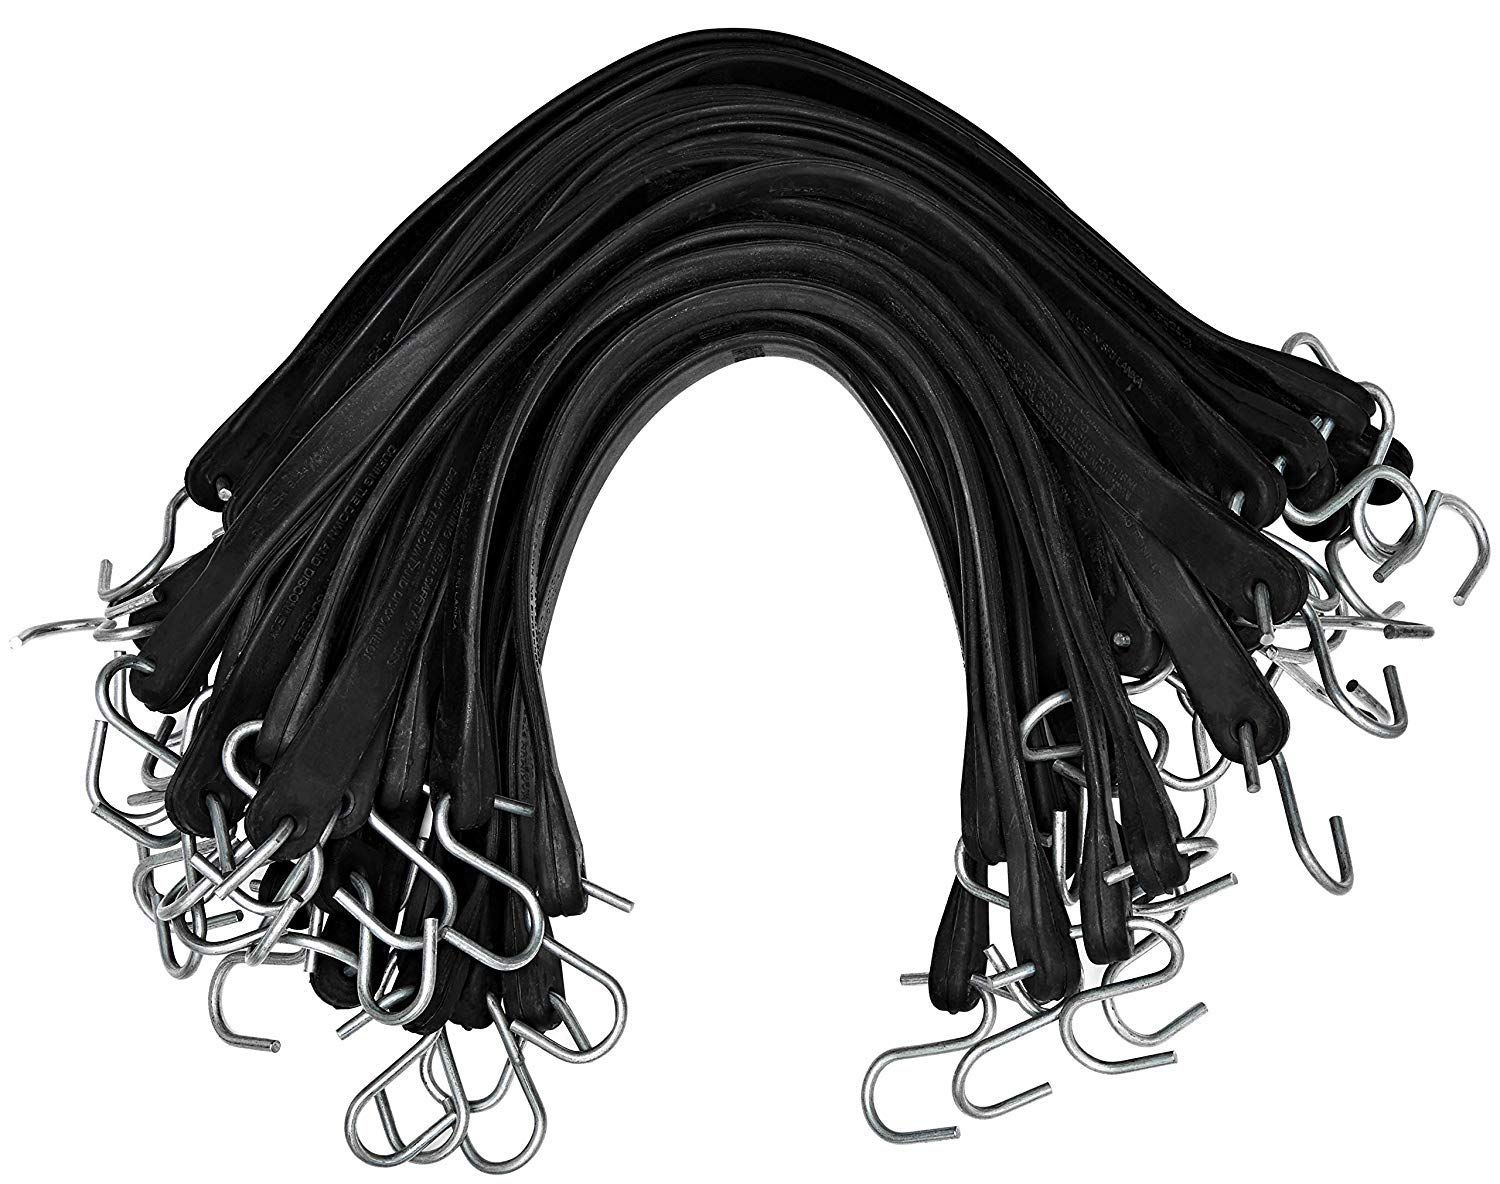 Kitchentoolz Rubber Tarp Straps Pack Of 50 Heavy Duty Natural Rubber Bungee Cords With Hooks 15 23 Max S Natural Rubber Bungee Cords Exterior Accessories